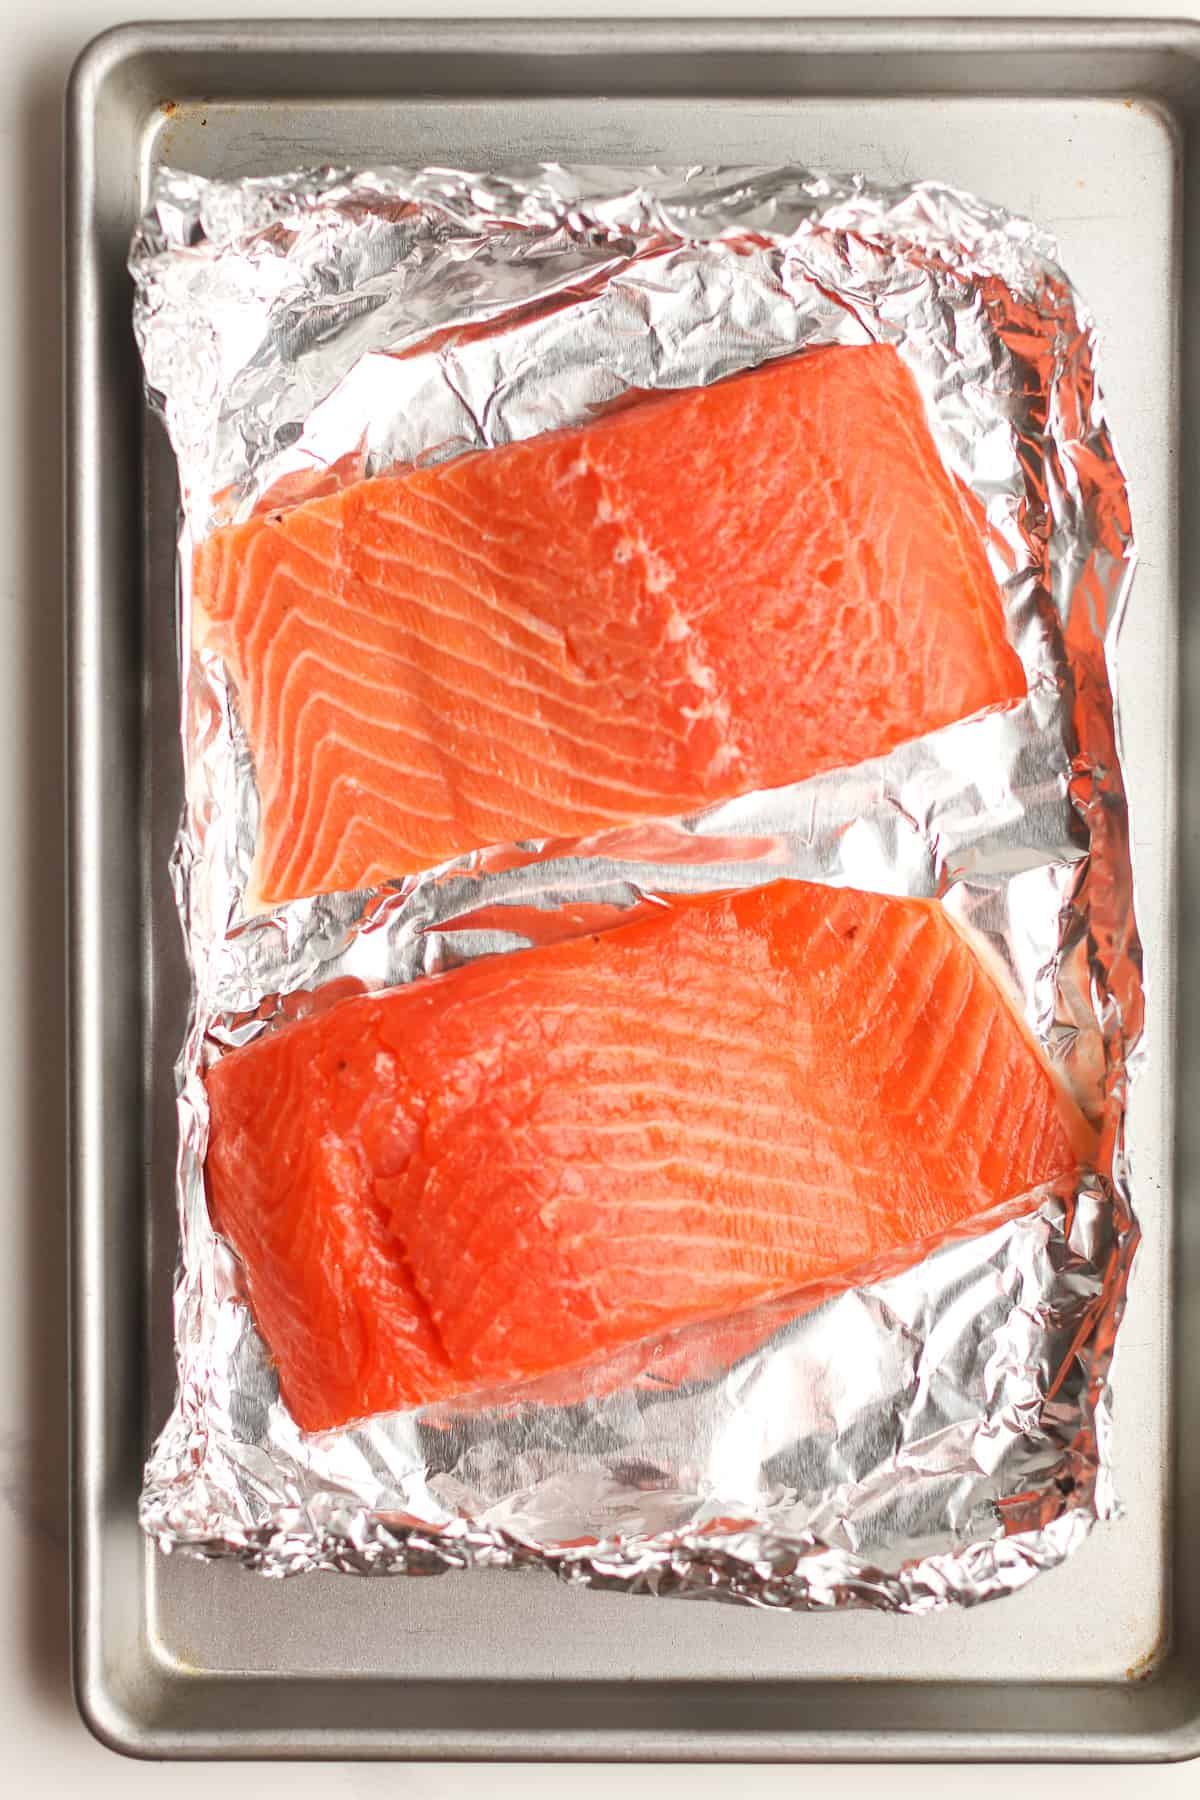 Two pieces of salmon in foil.